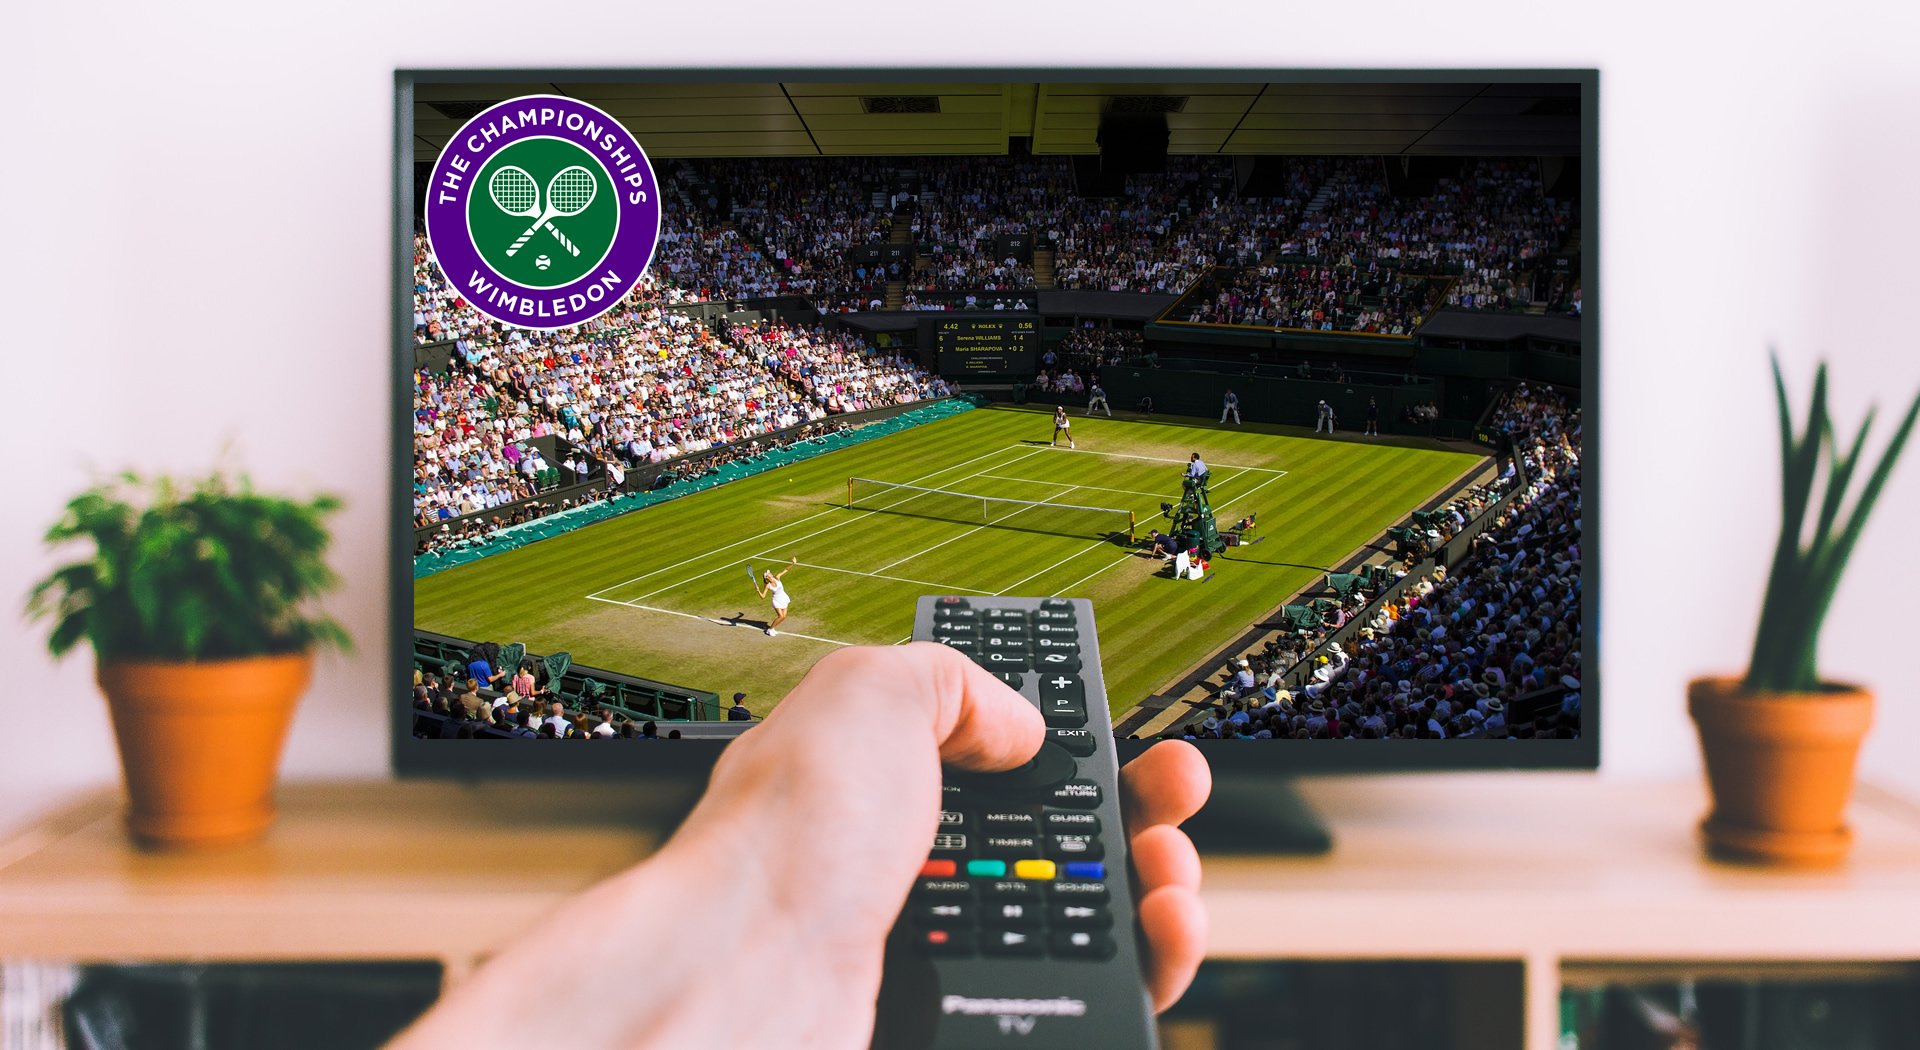 Wimbledon 2019 på tv og streaming